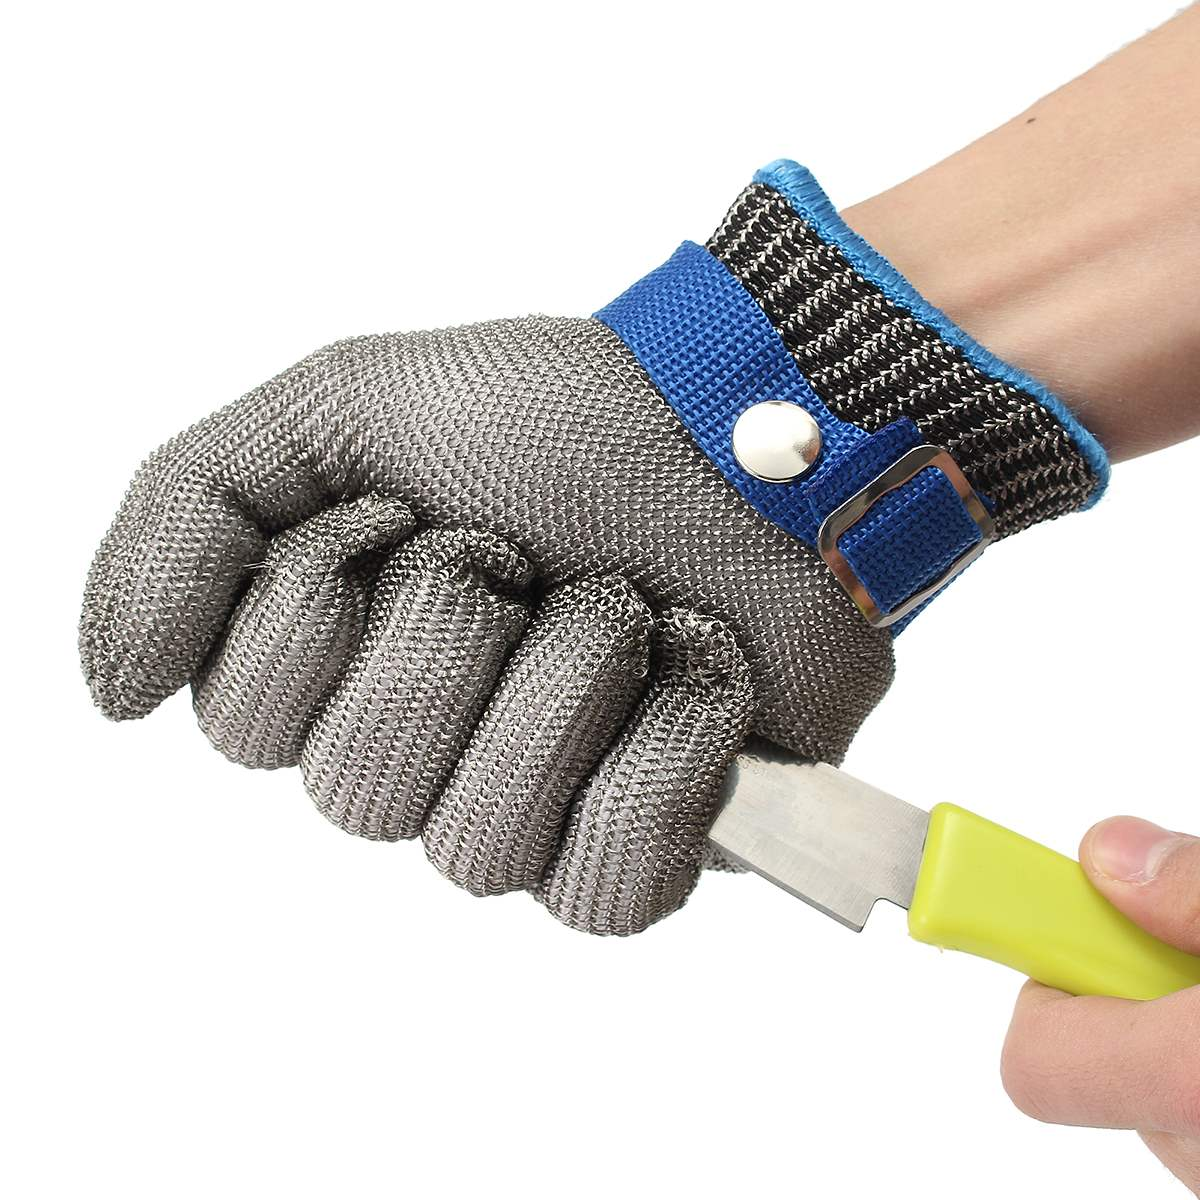 Size S Safety Cut Proof Stab <font><b>Resistant</b></font> Stainless Steel Wire Metal Mesh <font><b>Glove</b></font> High Performance Level 5 Protection